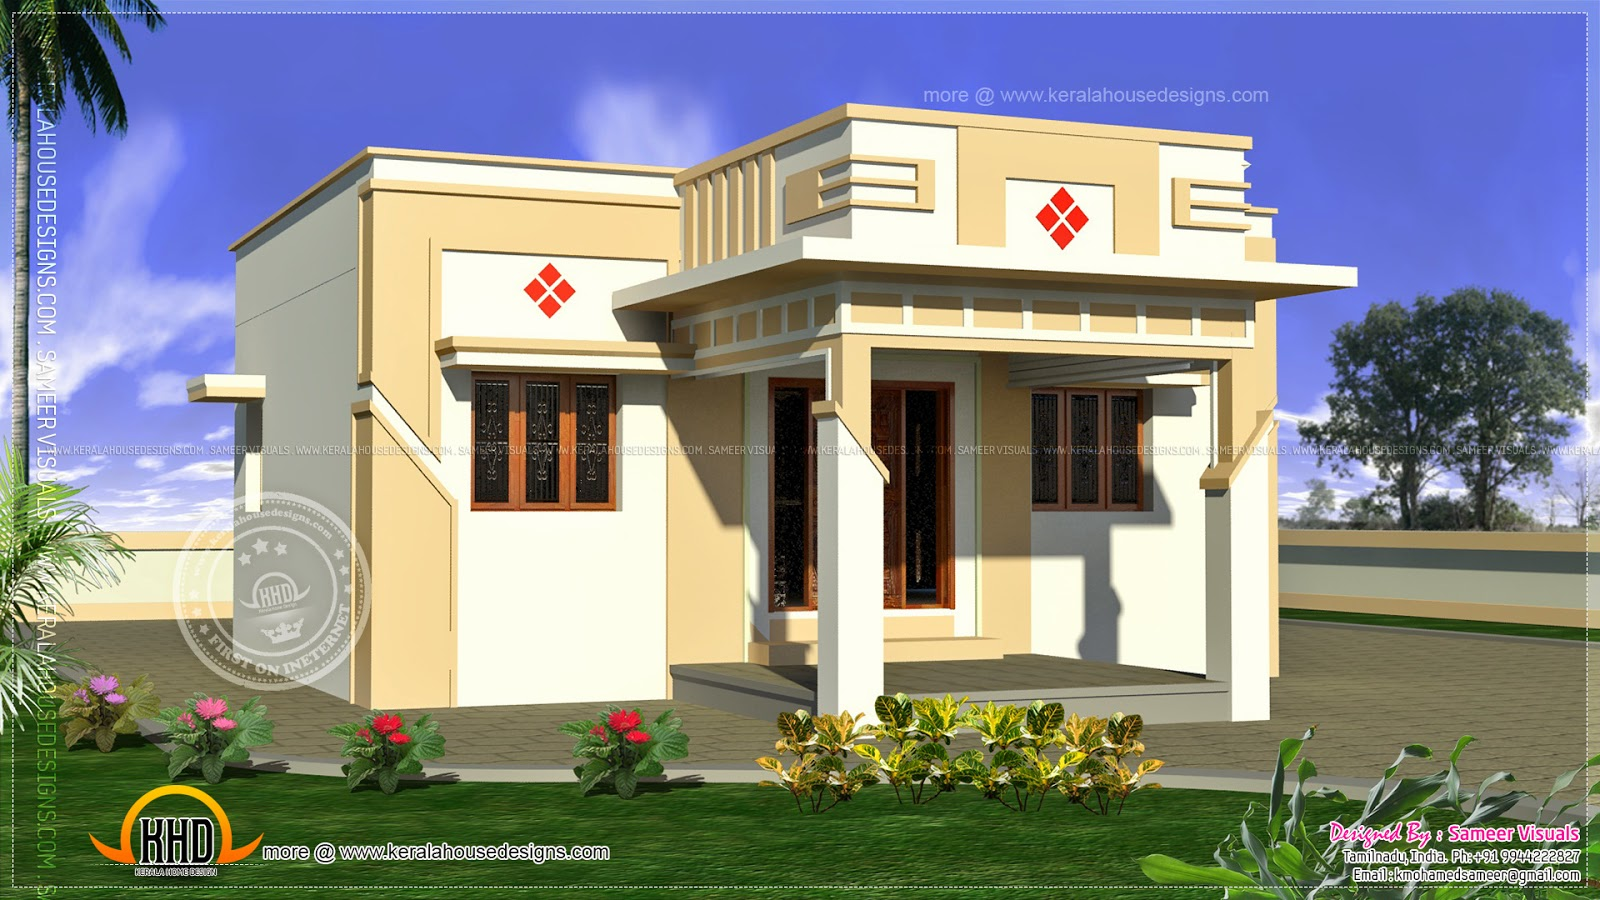 Low cost tamilnadu house kerala home design and floor plans Homes design images india